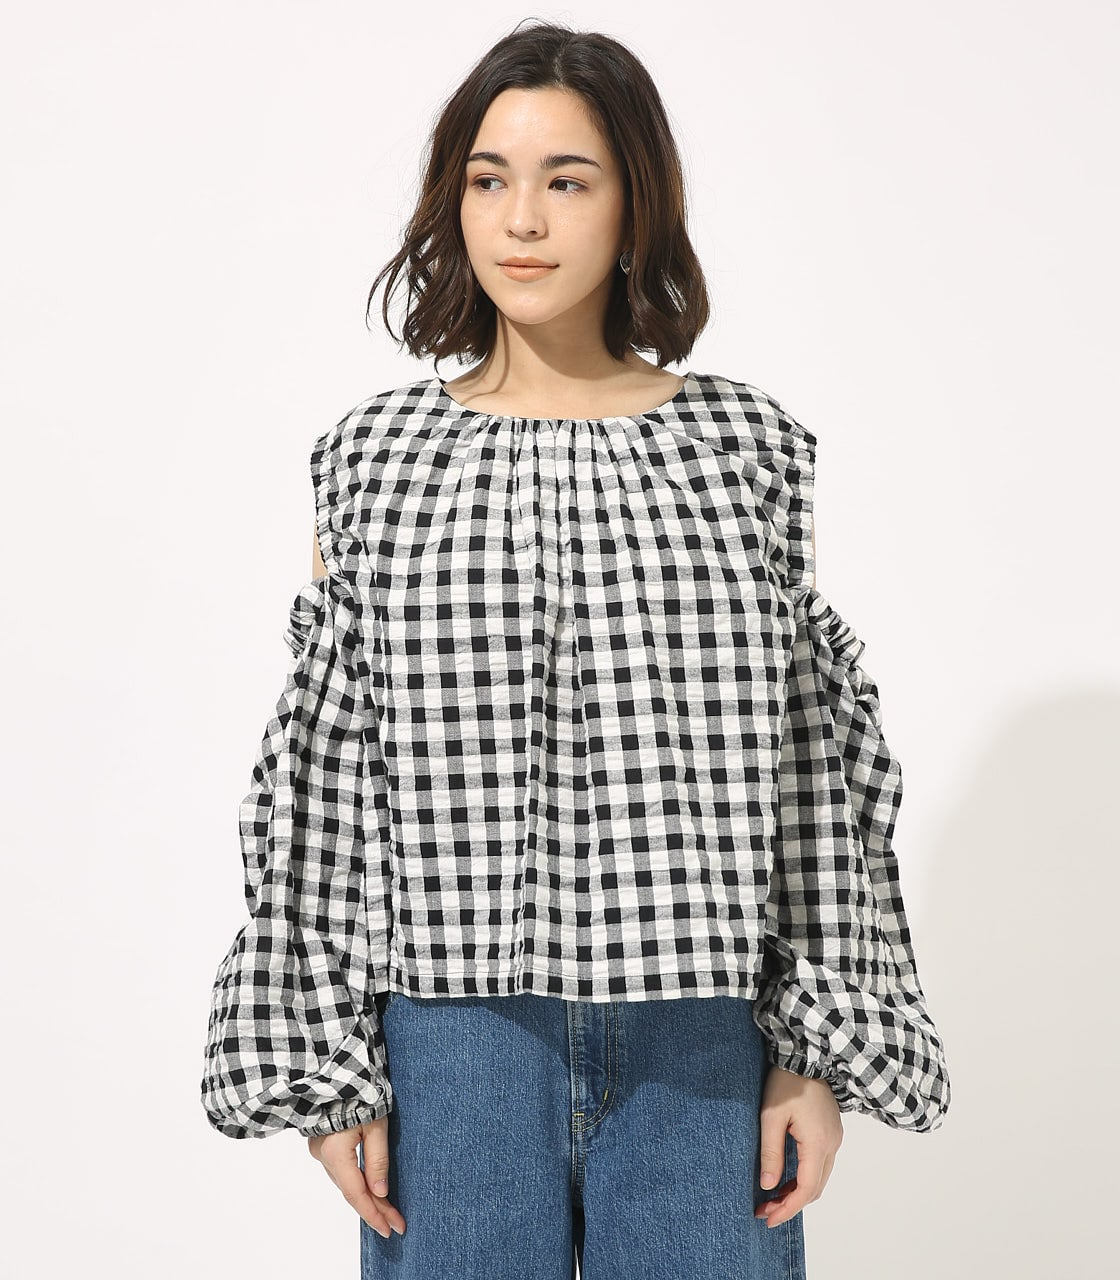 【AZUL BY MOUSSY】GINGHAM OPEN SHOULDER TOPS 【MOOK49掲載 90053】 詳細画像 柄BLK 4